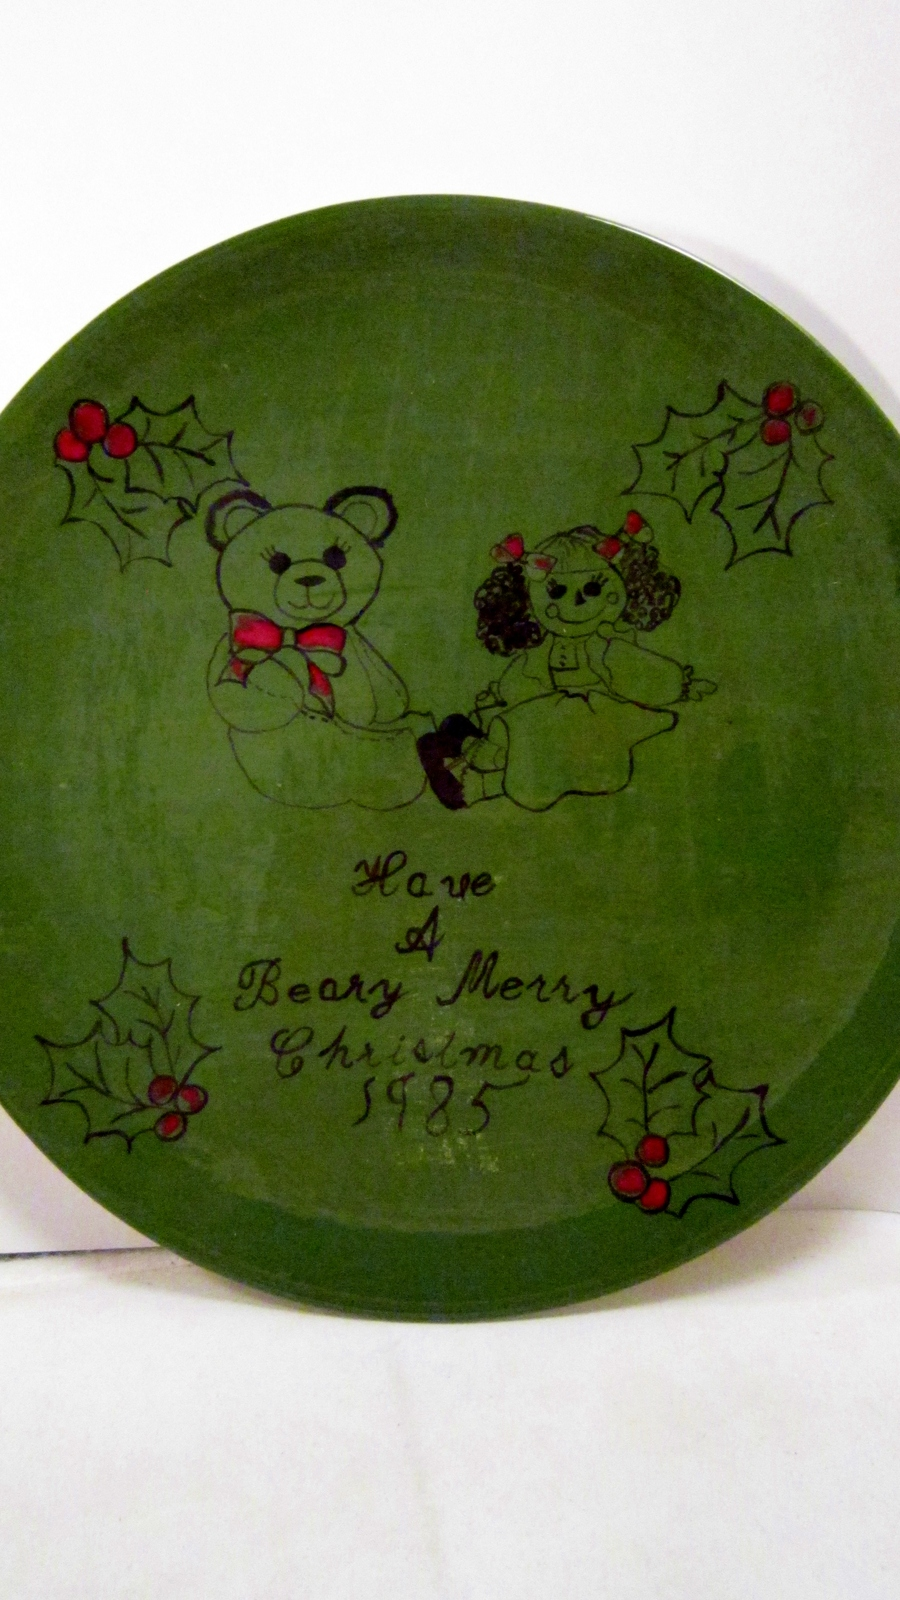 Beary Merry Christmas 1985 Plate 10 inch Handmade Forest Green